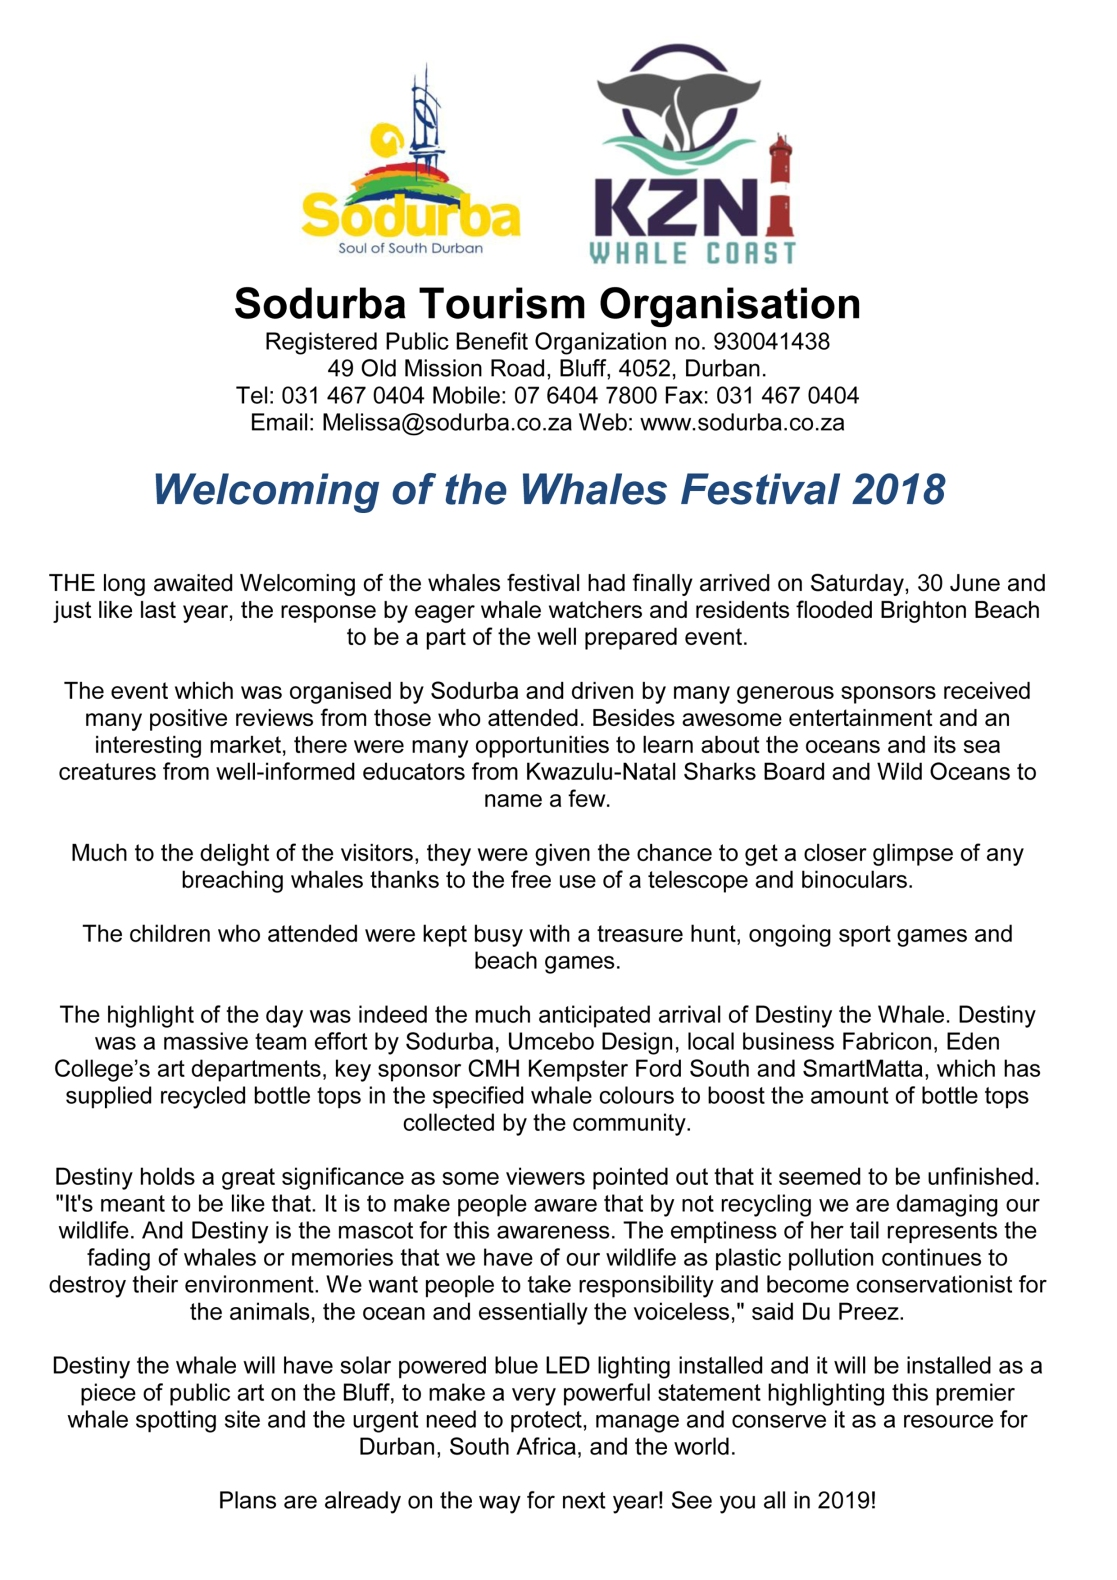 POST PR on Welcoming of the Whales Festival 2018